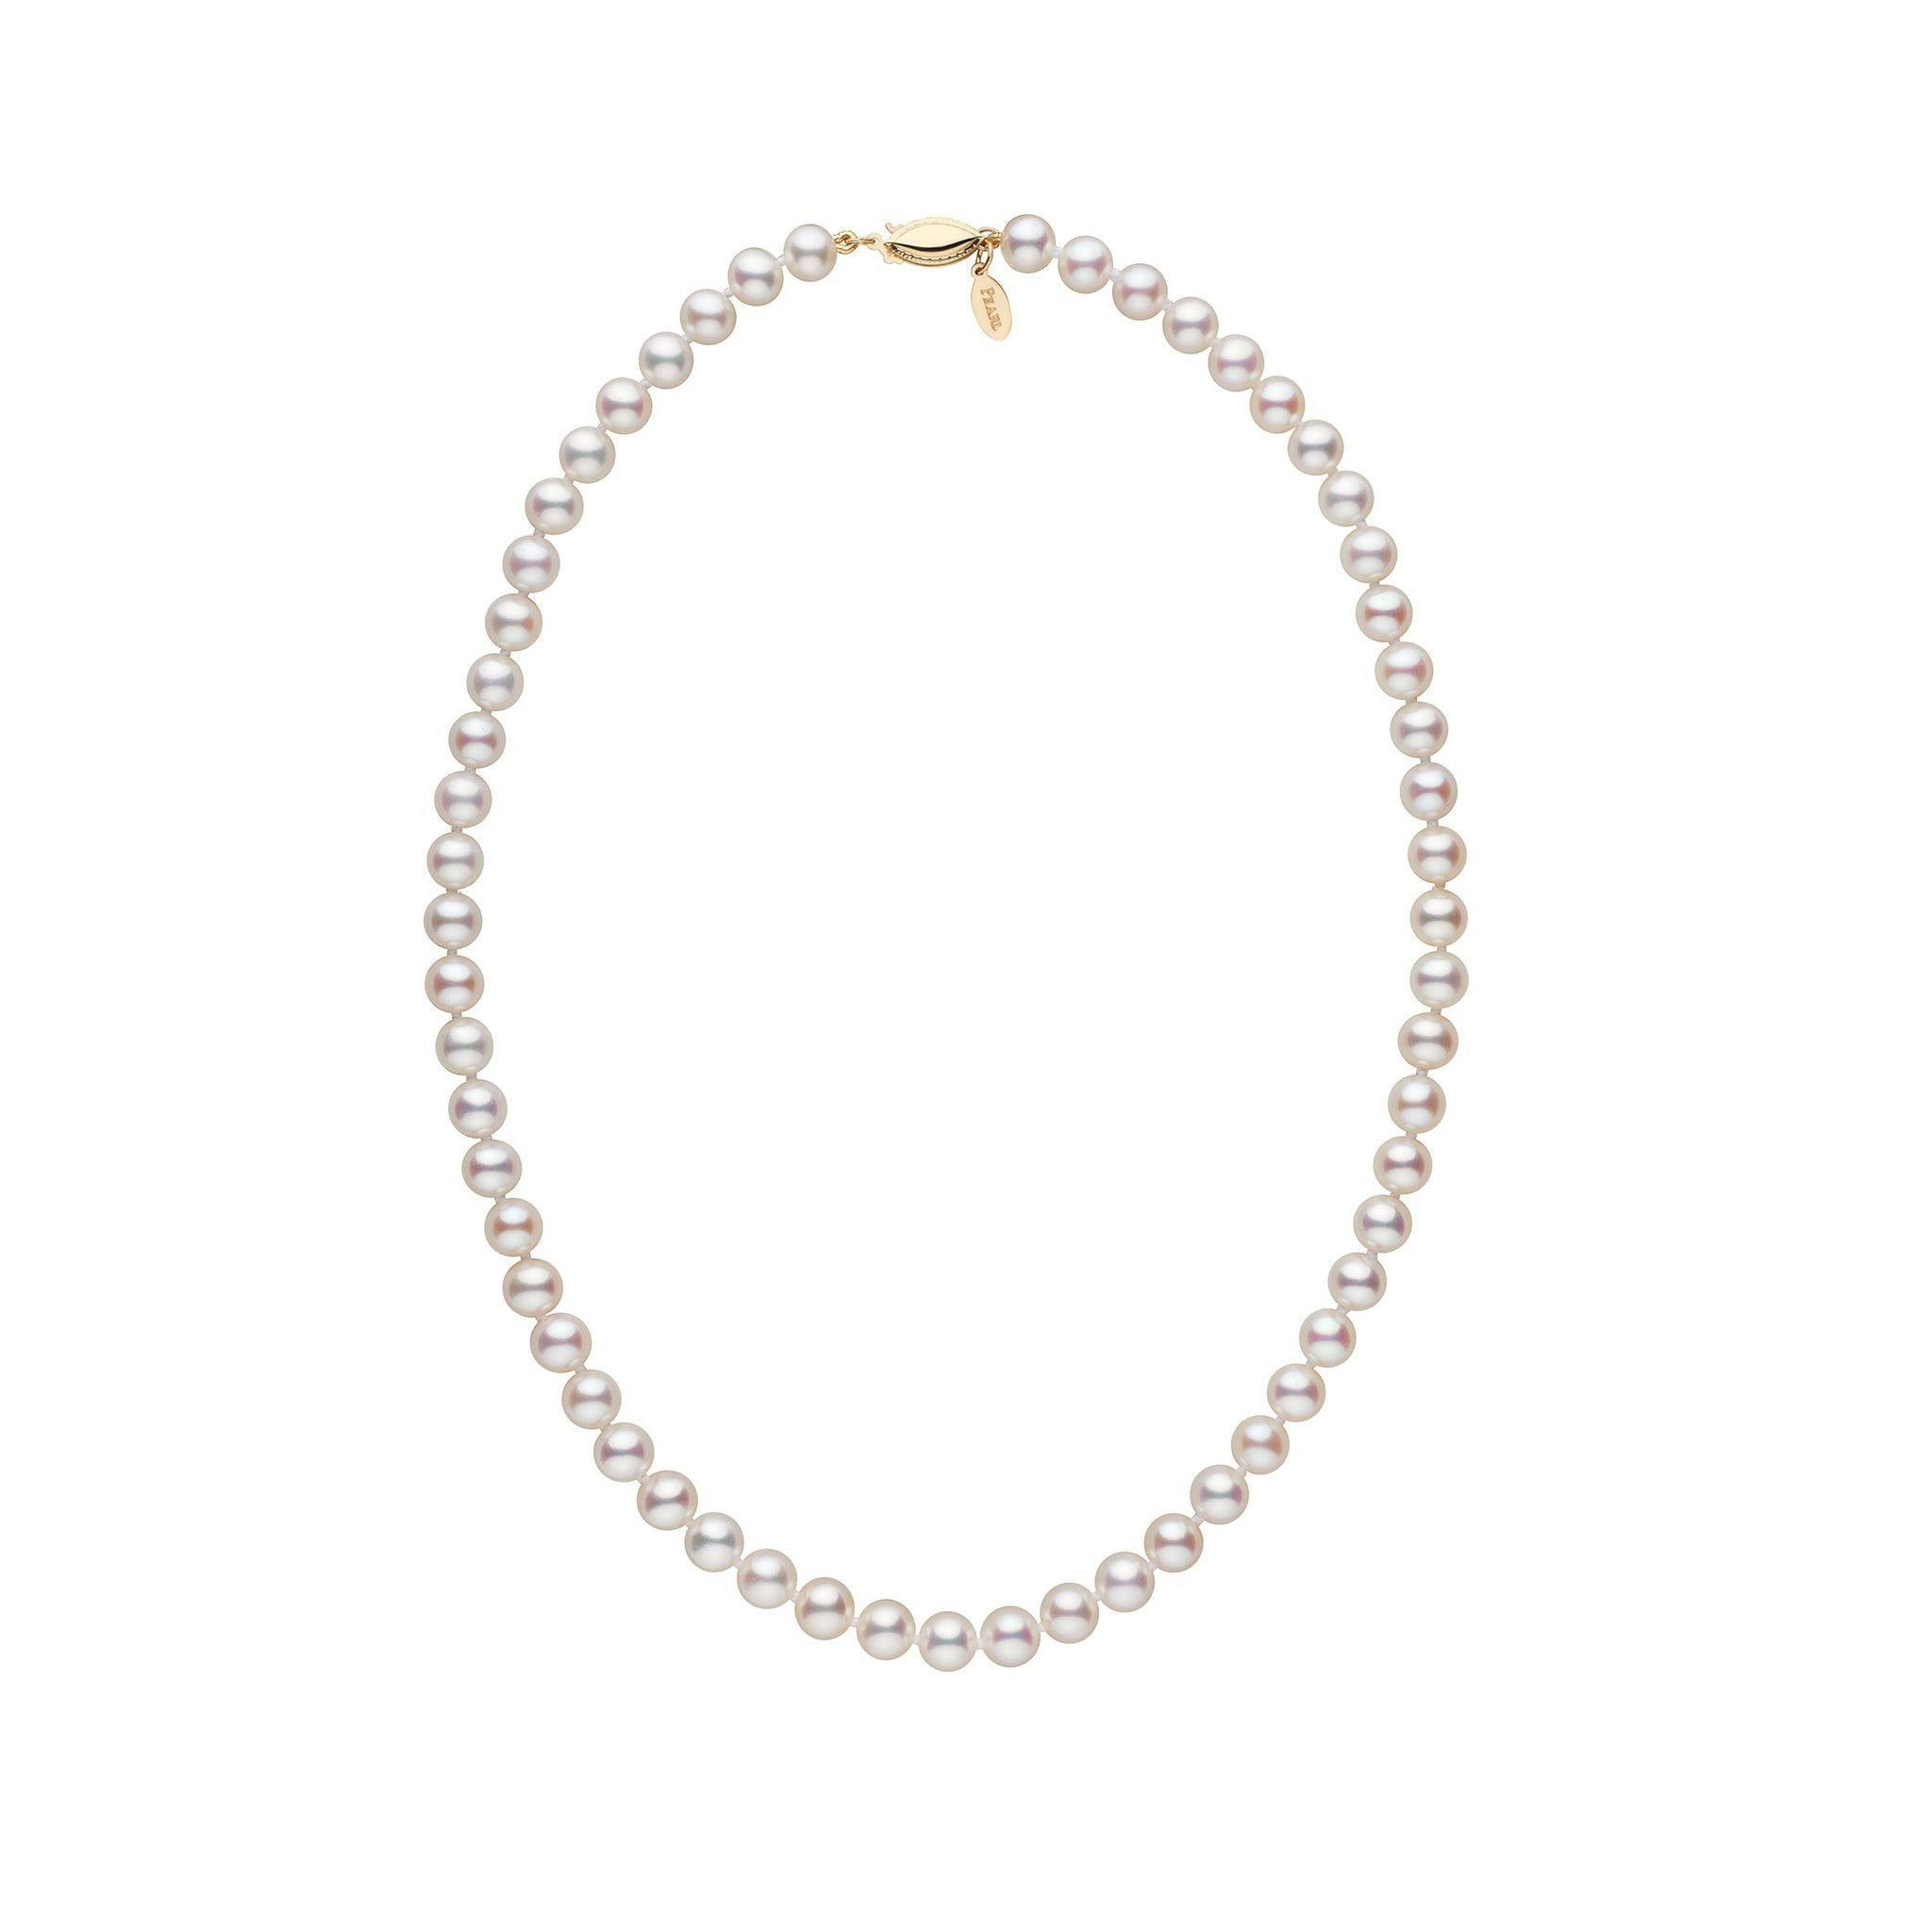 6.5-7.0 mm 16 Inch White Freshadama Freshwater Pearl Necklace